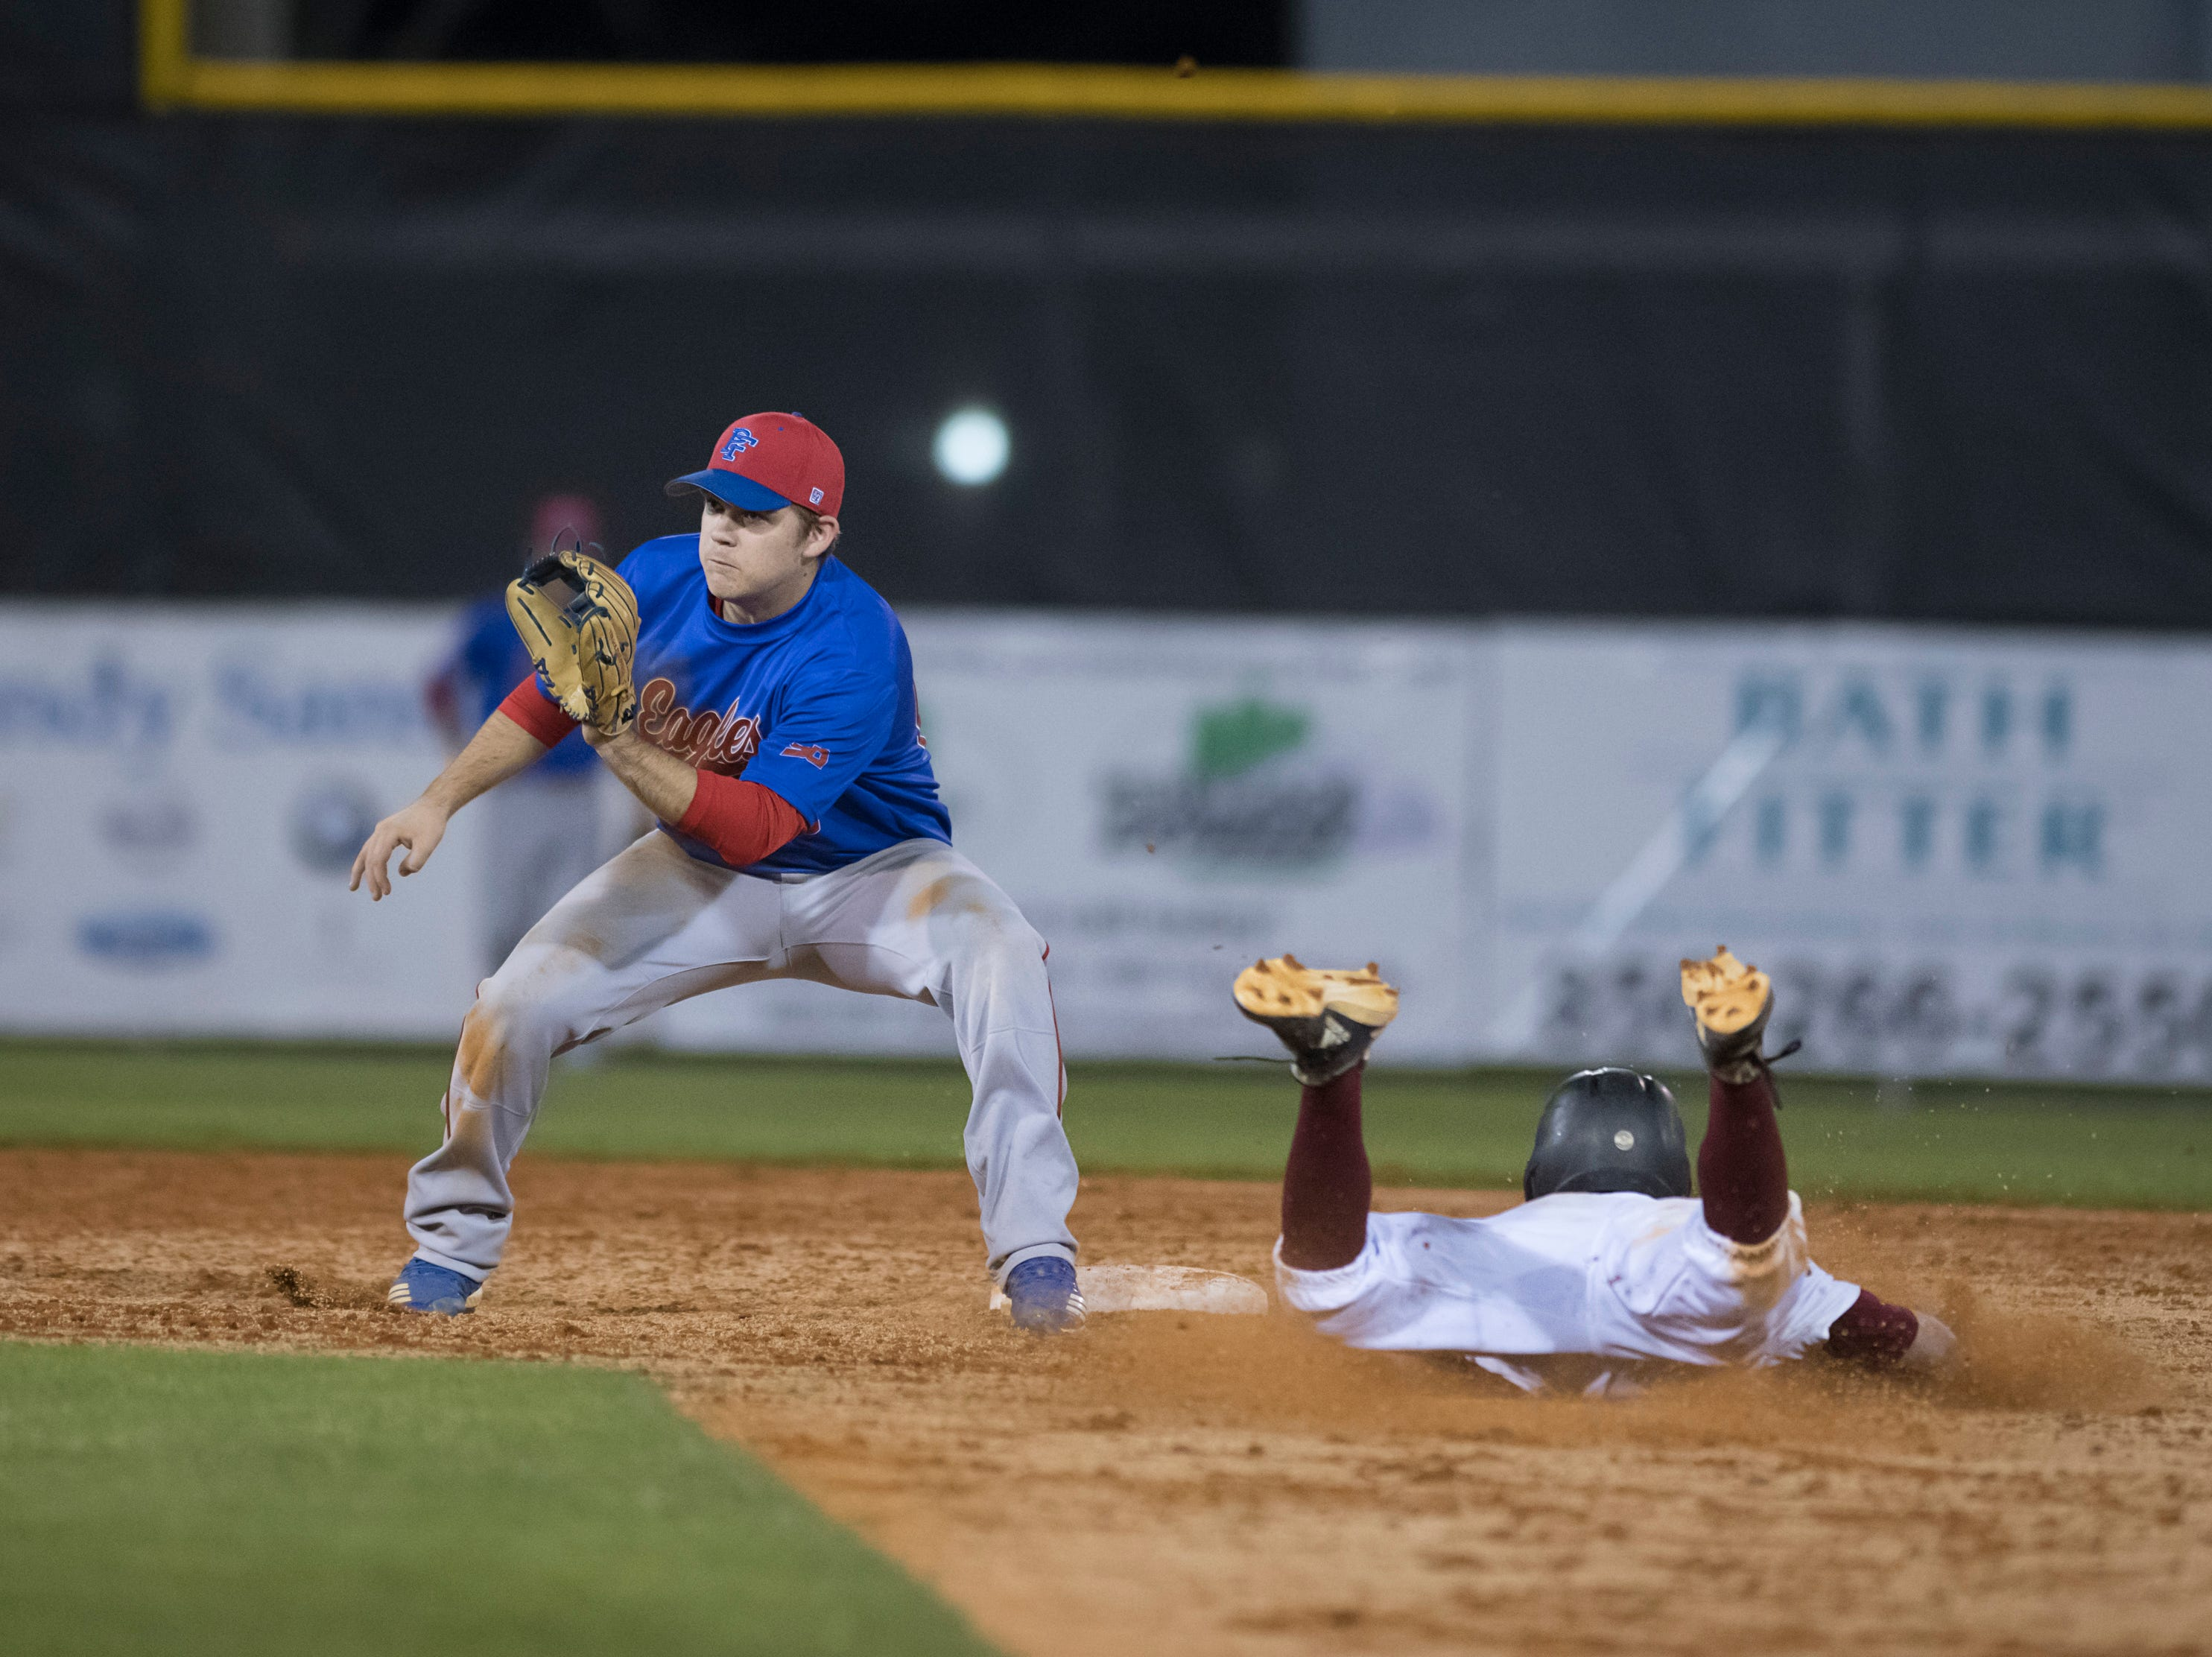 Aaron Noack (12) safely takes 2nd base ahead of the throw to Timmy Williams (20) during the Pine Forest vs Tate baseball game at Tate High School on Thursday, March 7, 2019.  The Aggies won 4-3.